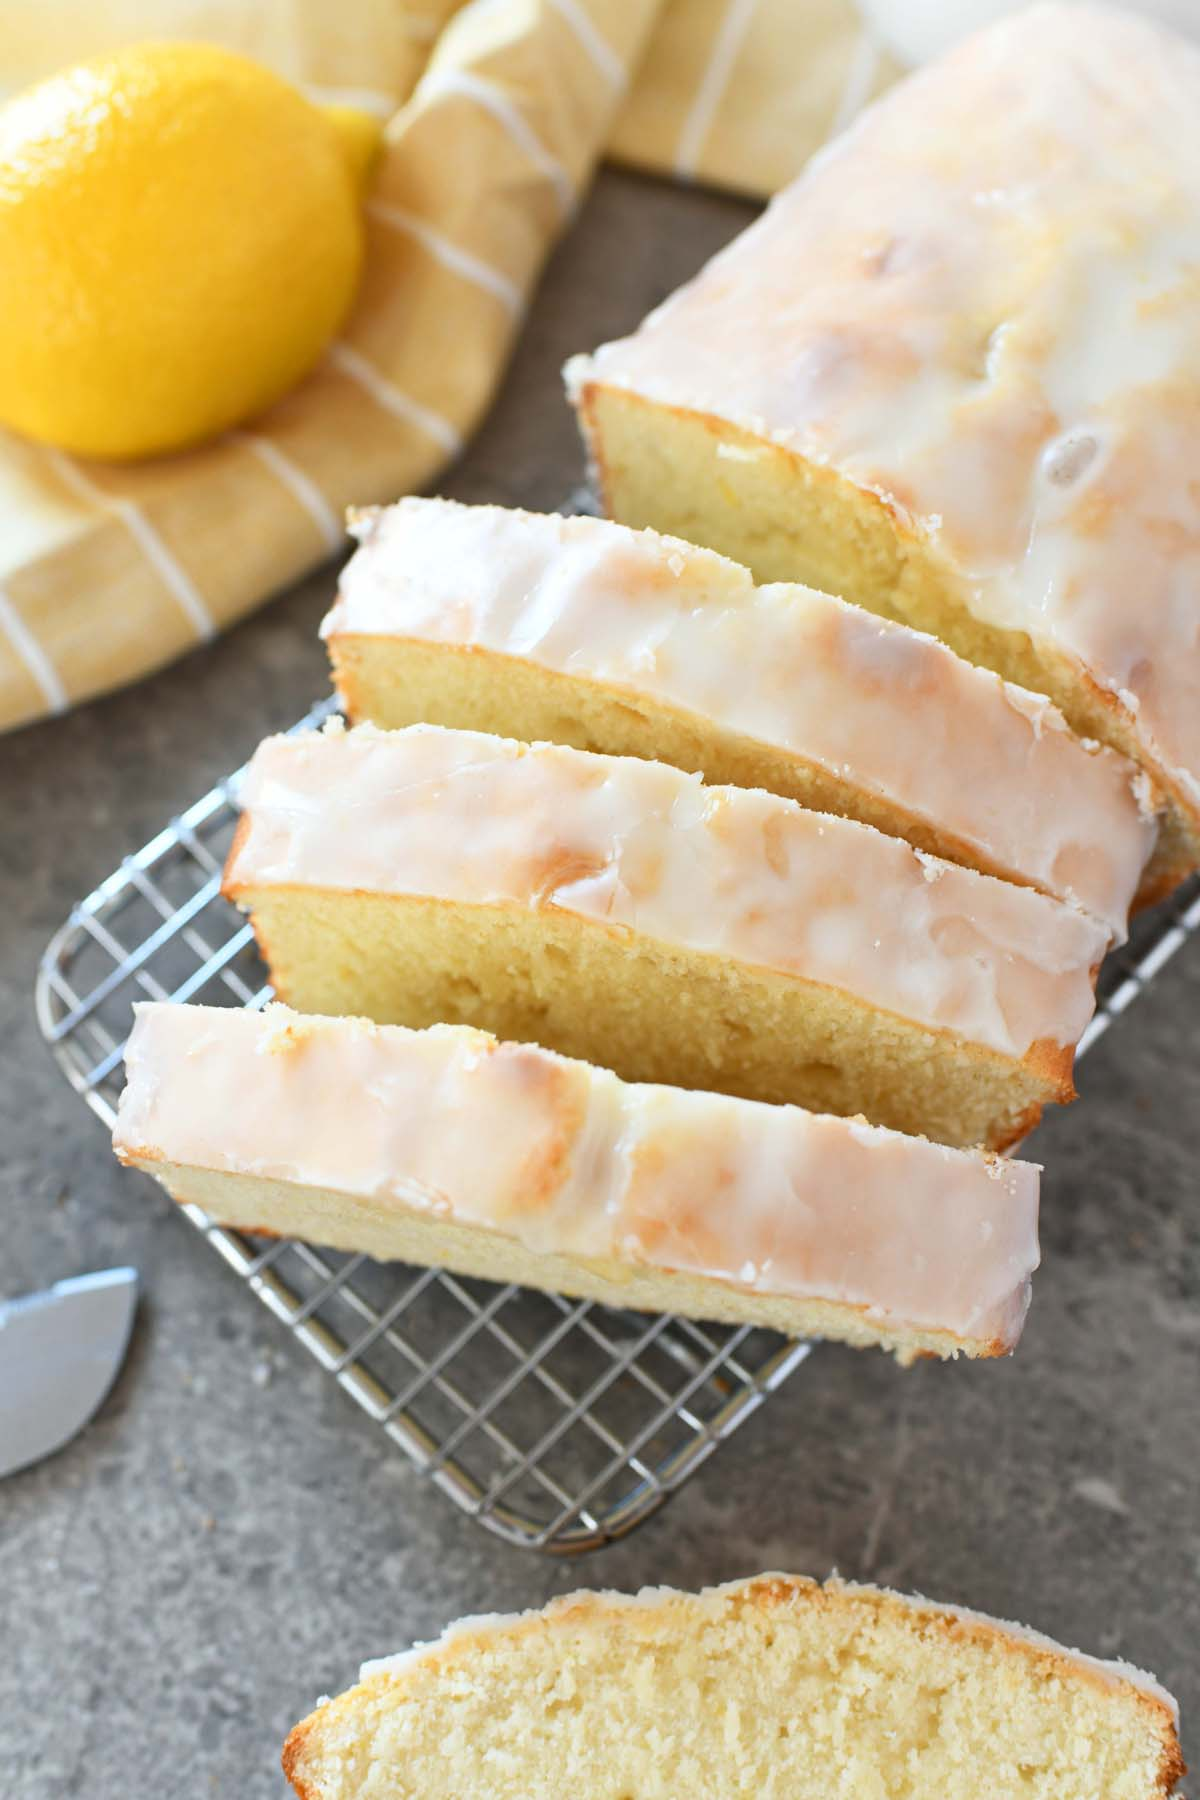 Sliced Lemon pound cake on a cooling rack. There is a yellow lemon, yellow napkin and a knife in this shot.